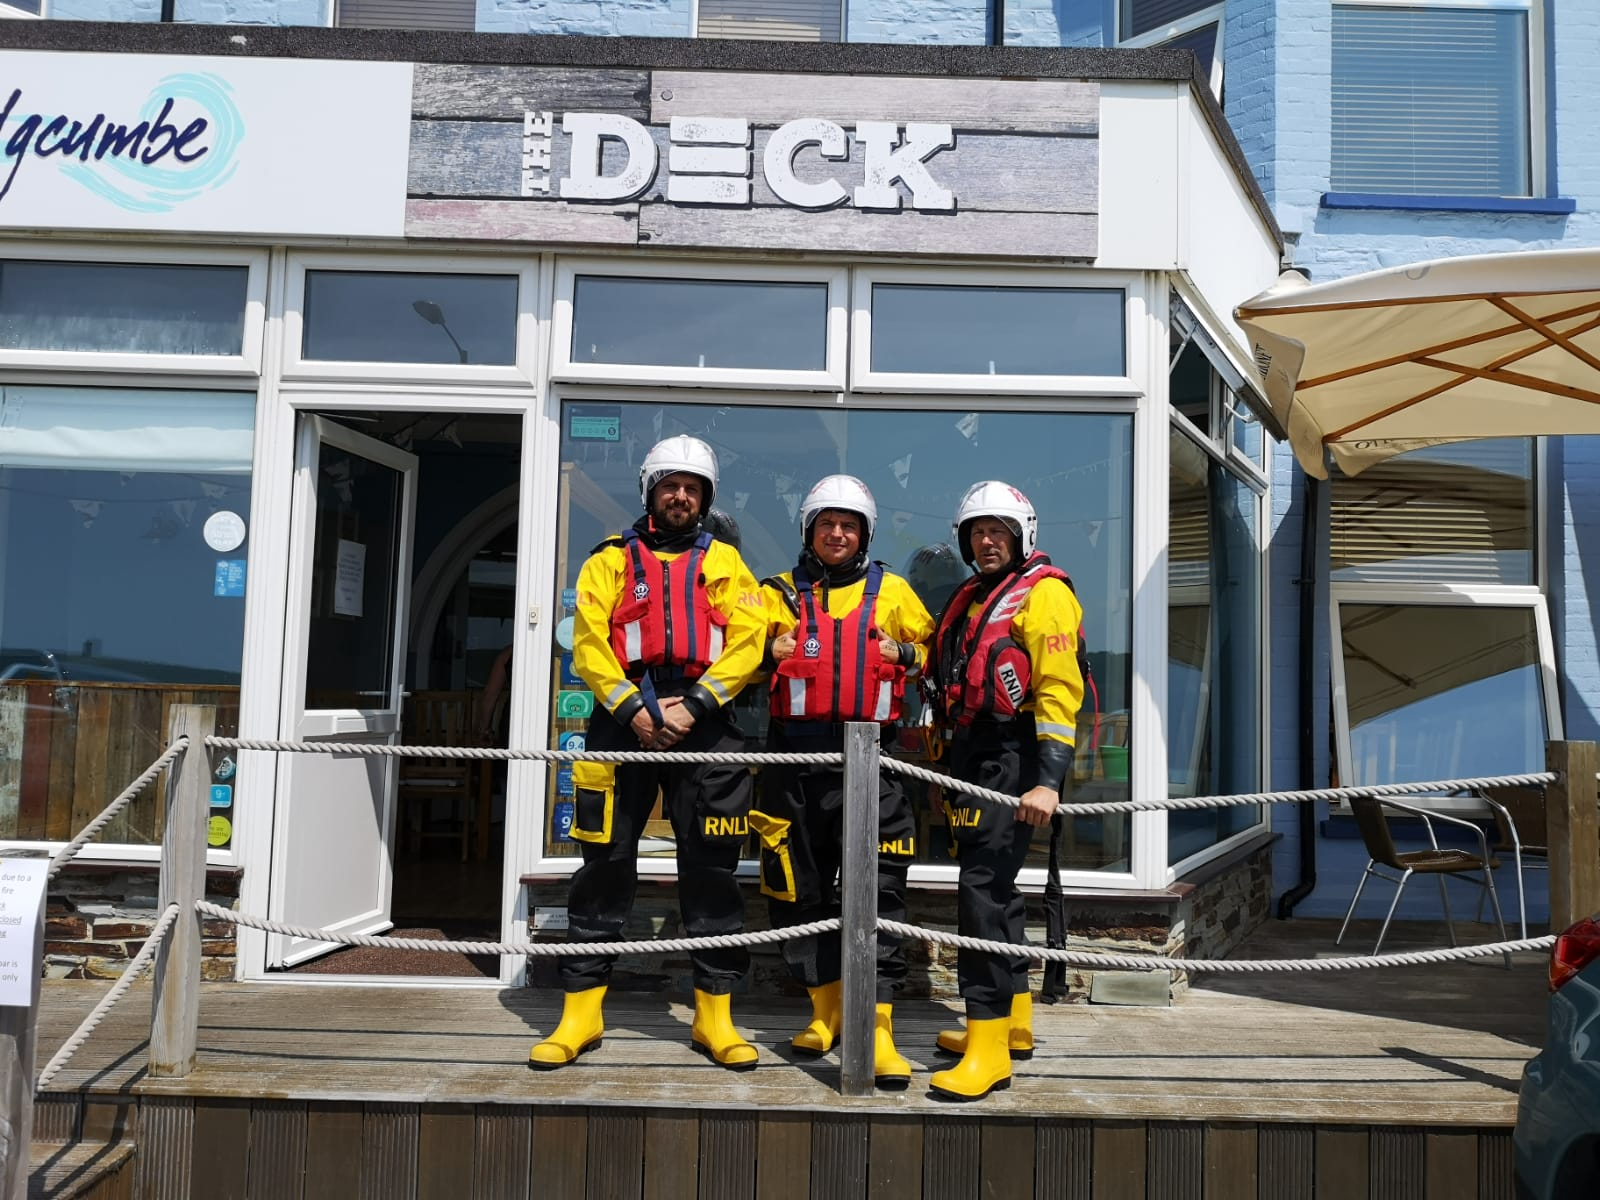 Three volunteer crew members in lifeboat kit outside the Deck bar and restaurant in Bude